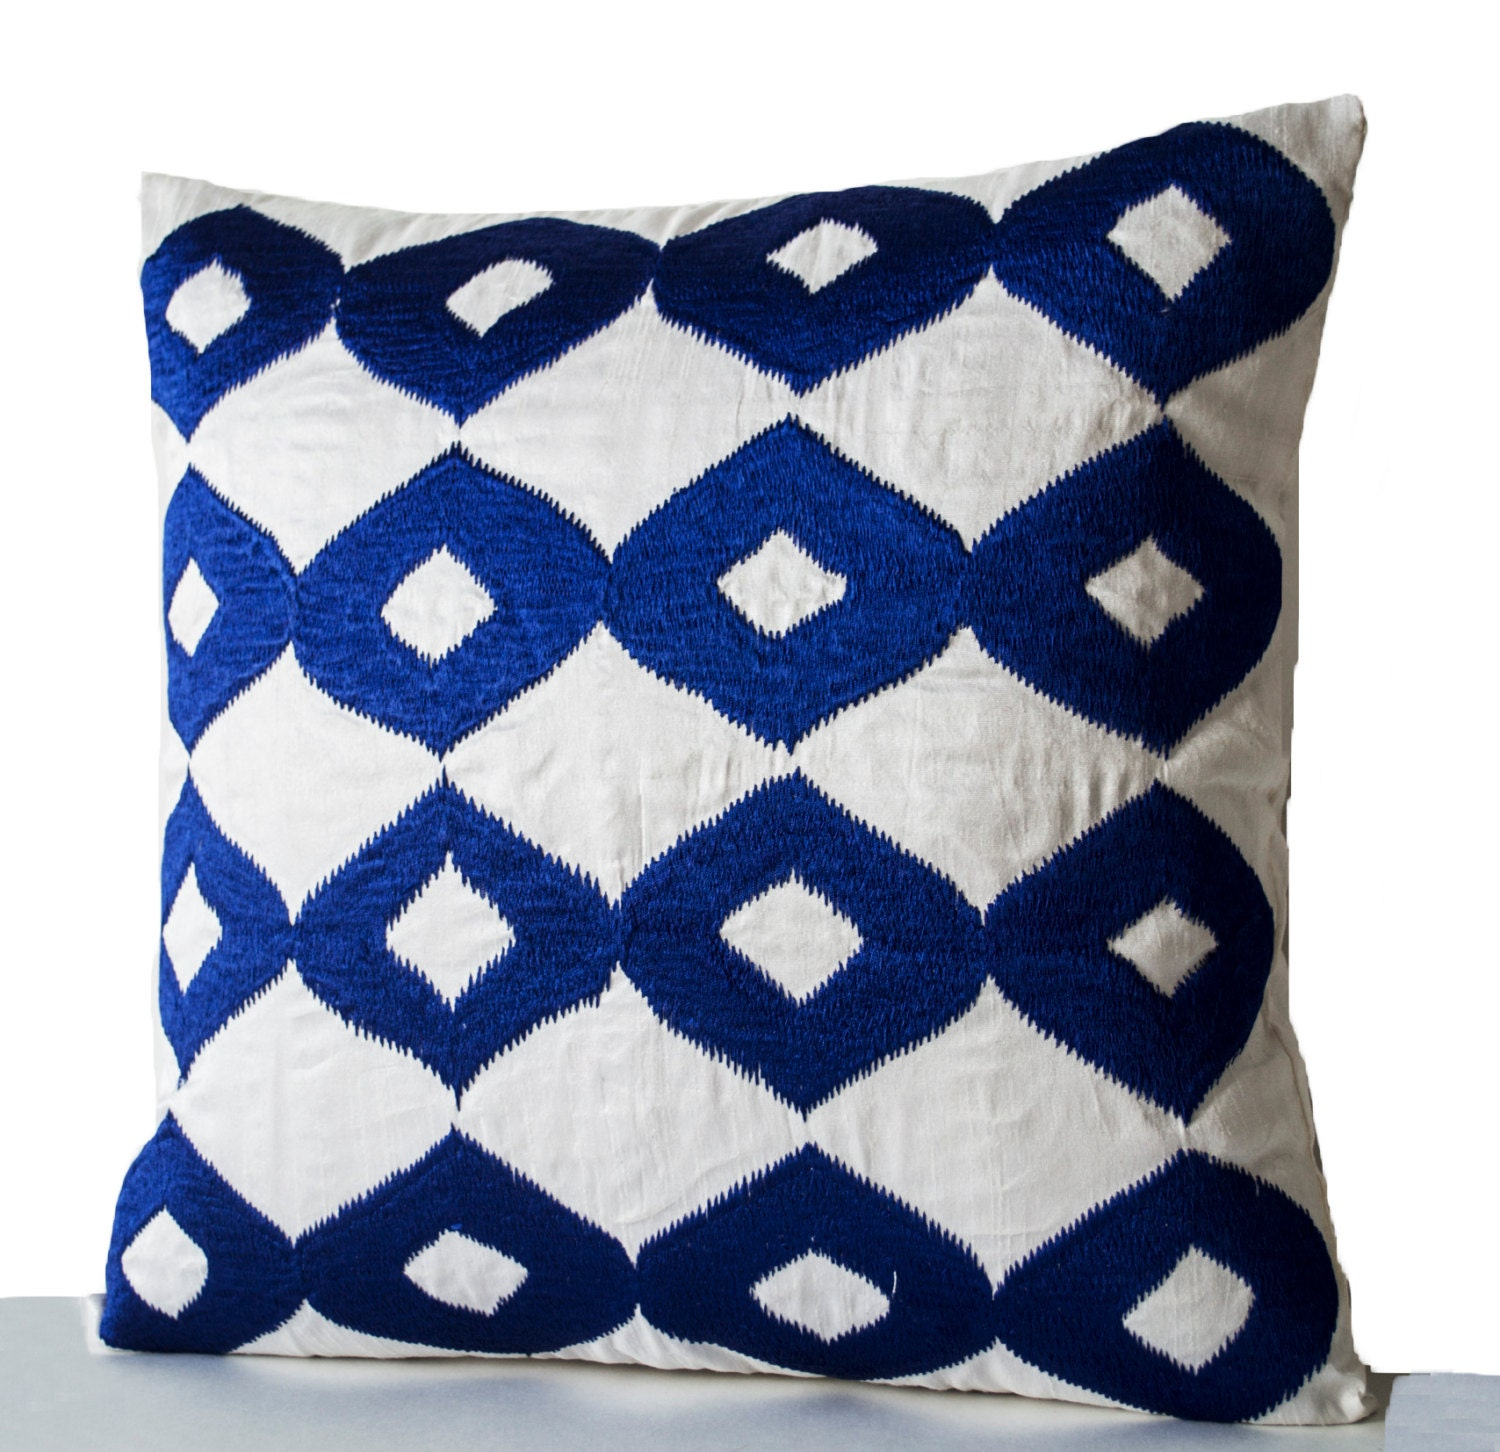 Royal Blue And White Throw Pillows : Decorative Throw Pillow Royal Blue Pillows White Faux Silk